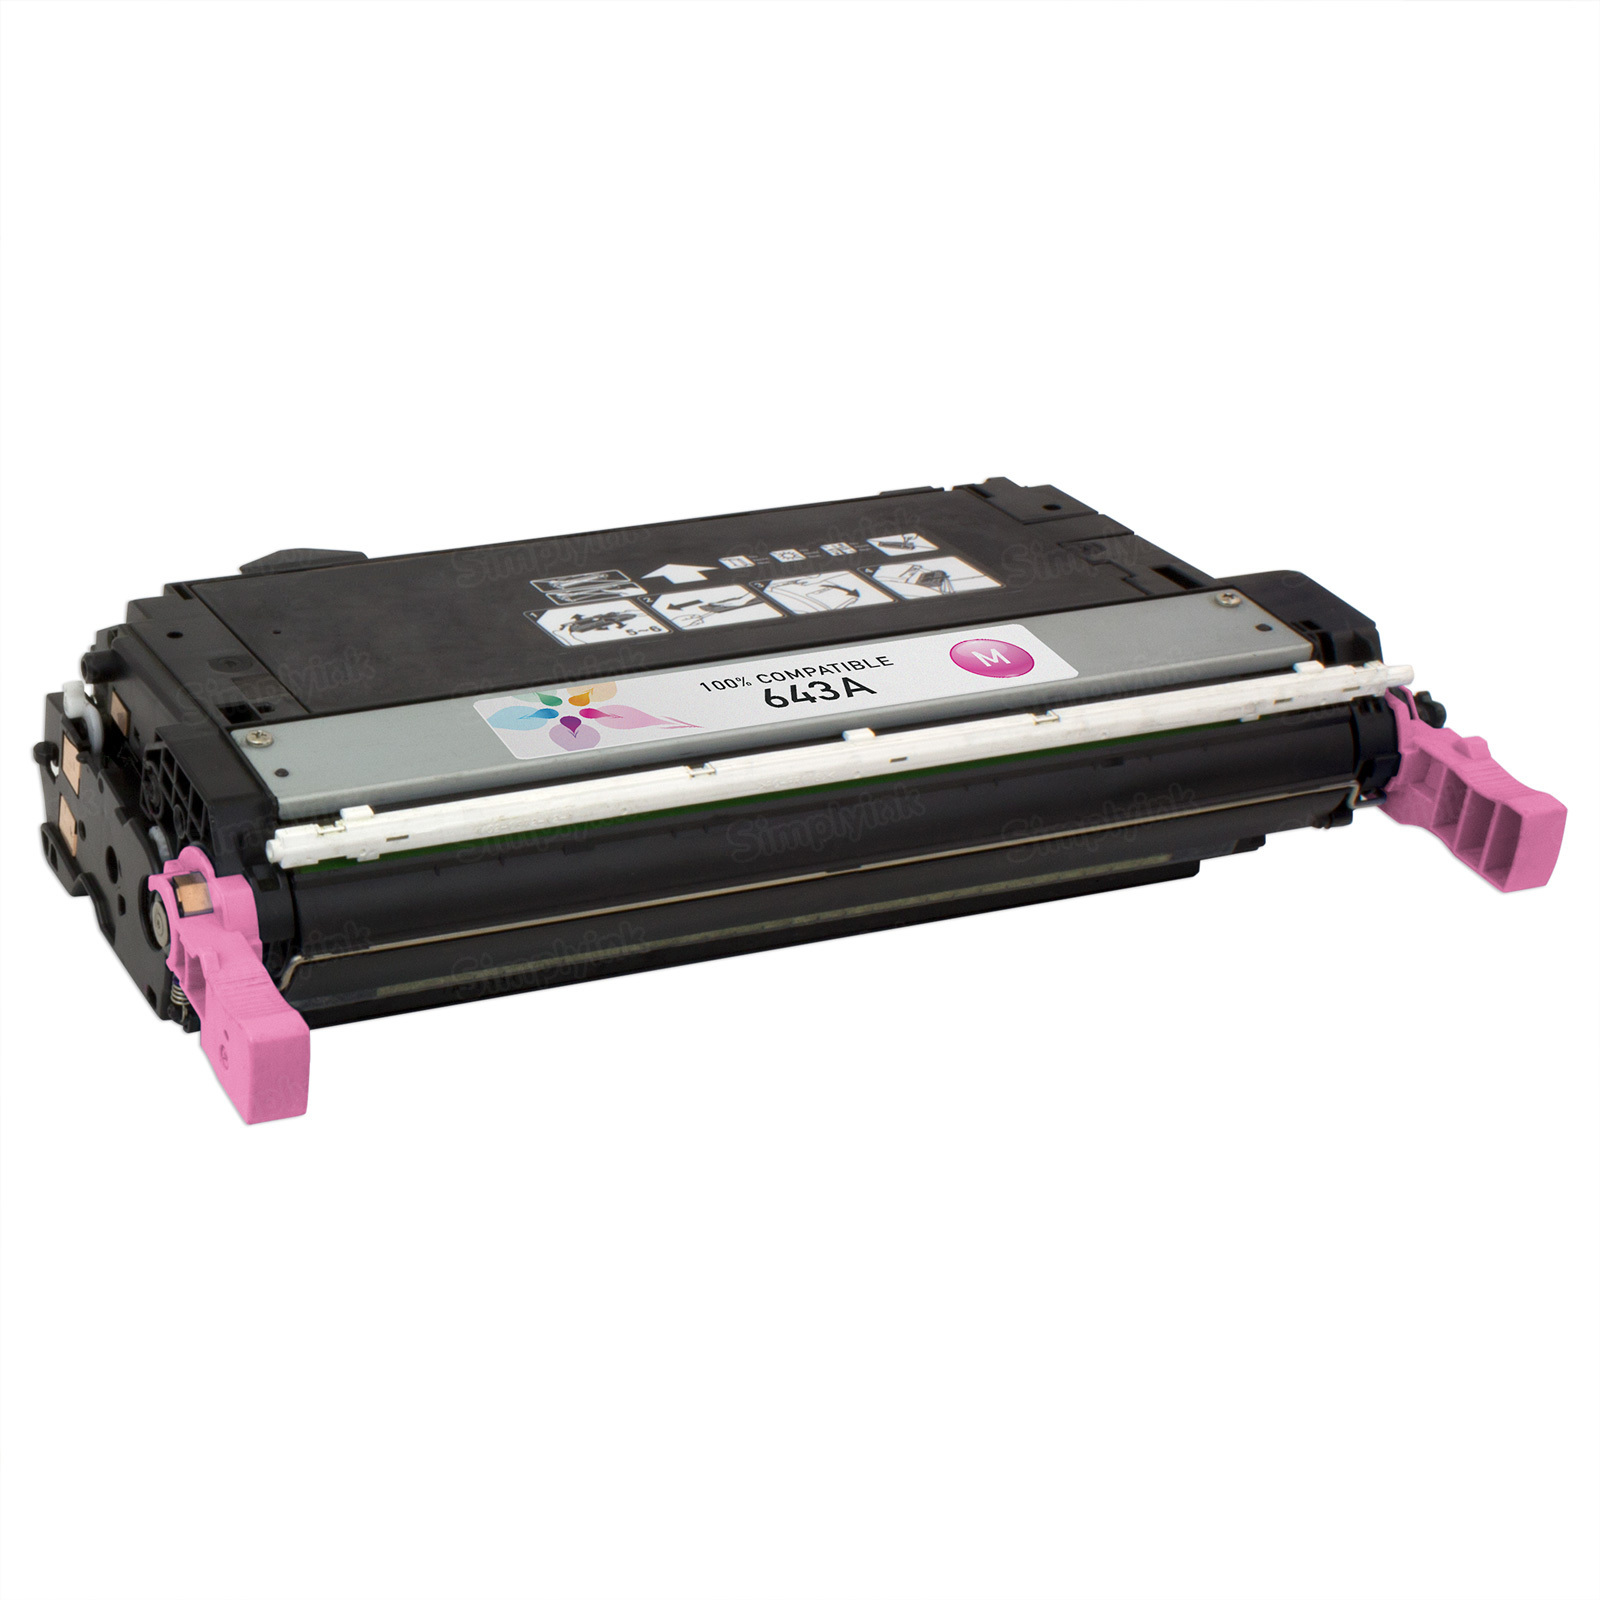 Remanufactured Replacement Magenta Laser Toner for HP 643A